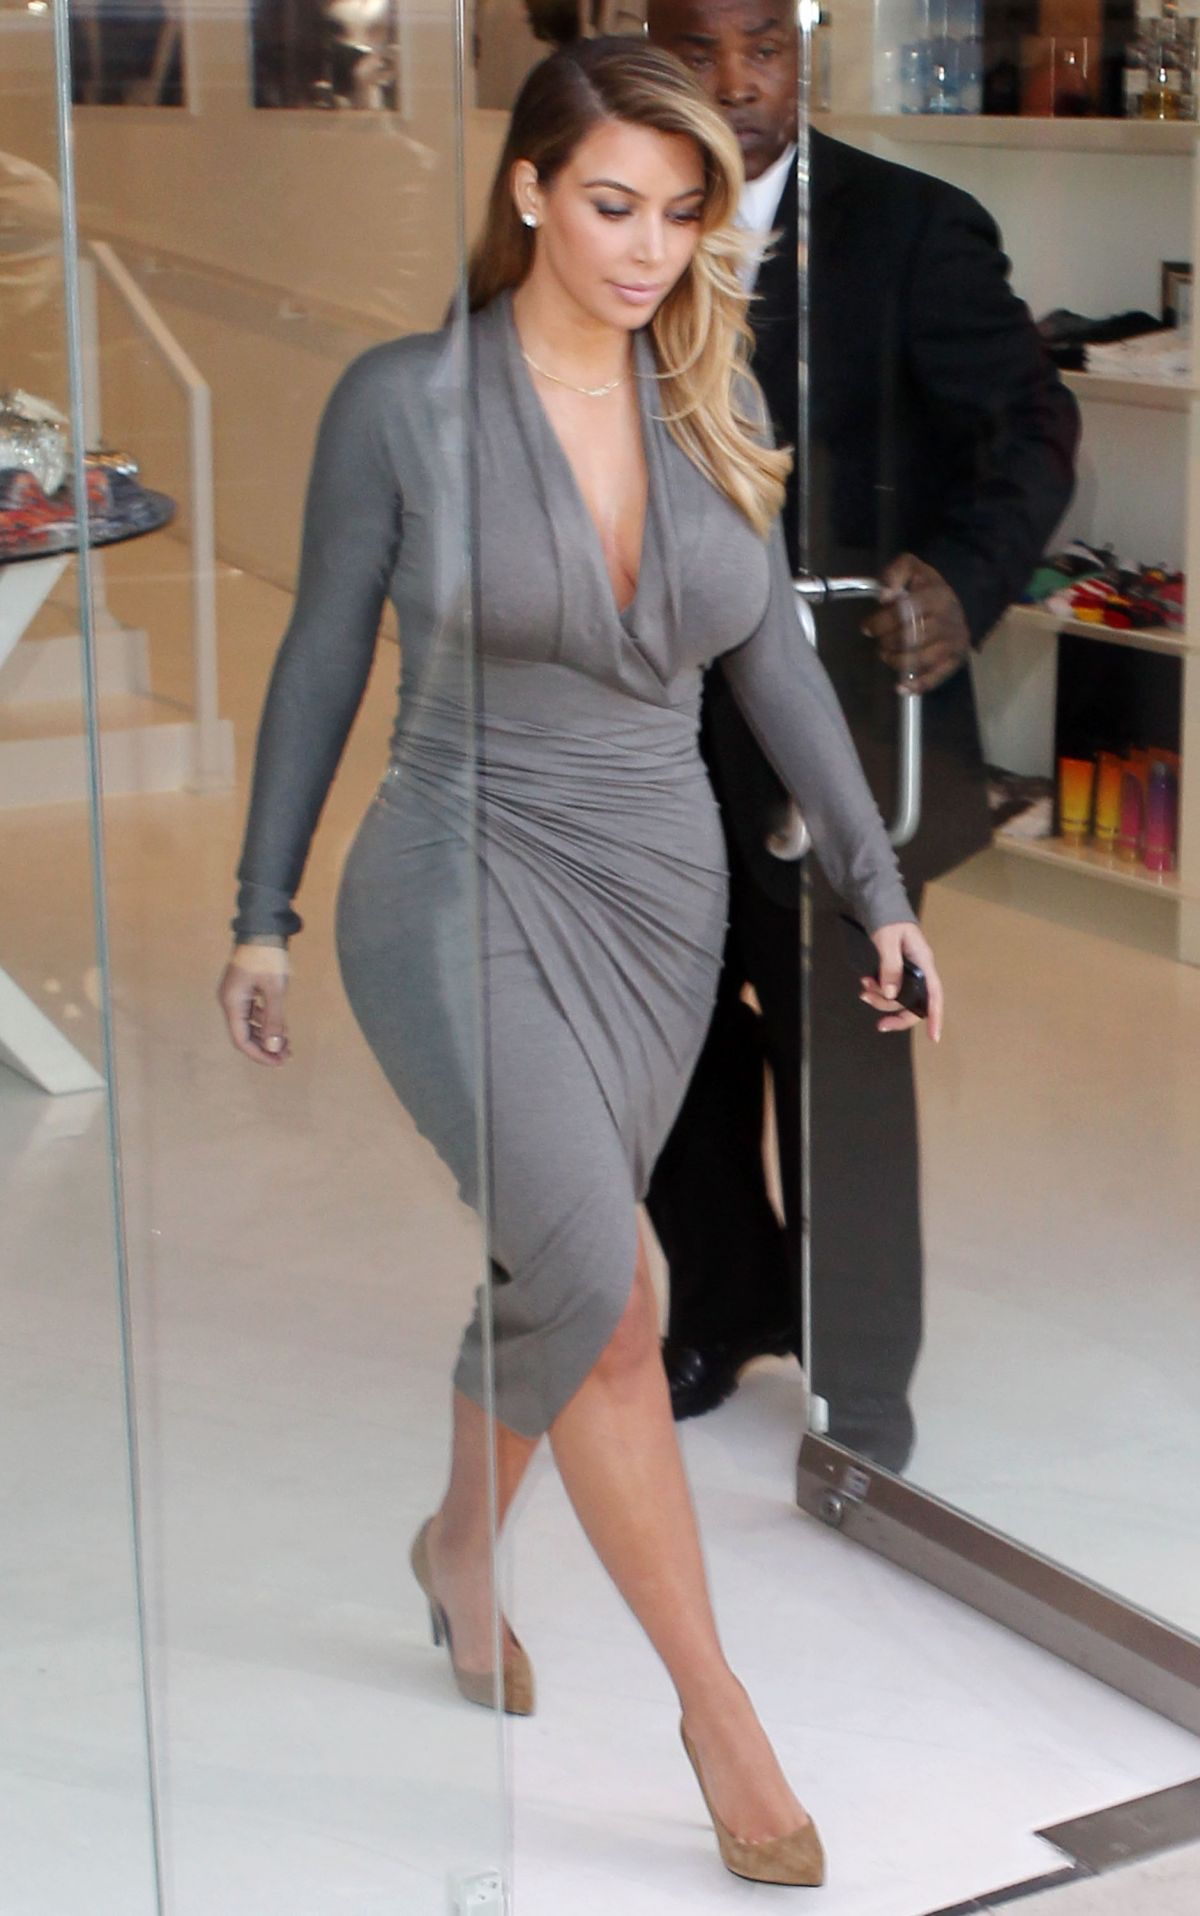 Kim Kardashian At Dash Boutique In West Hollywood - Celebzz Kim Kardashian 2013 October